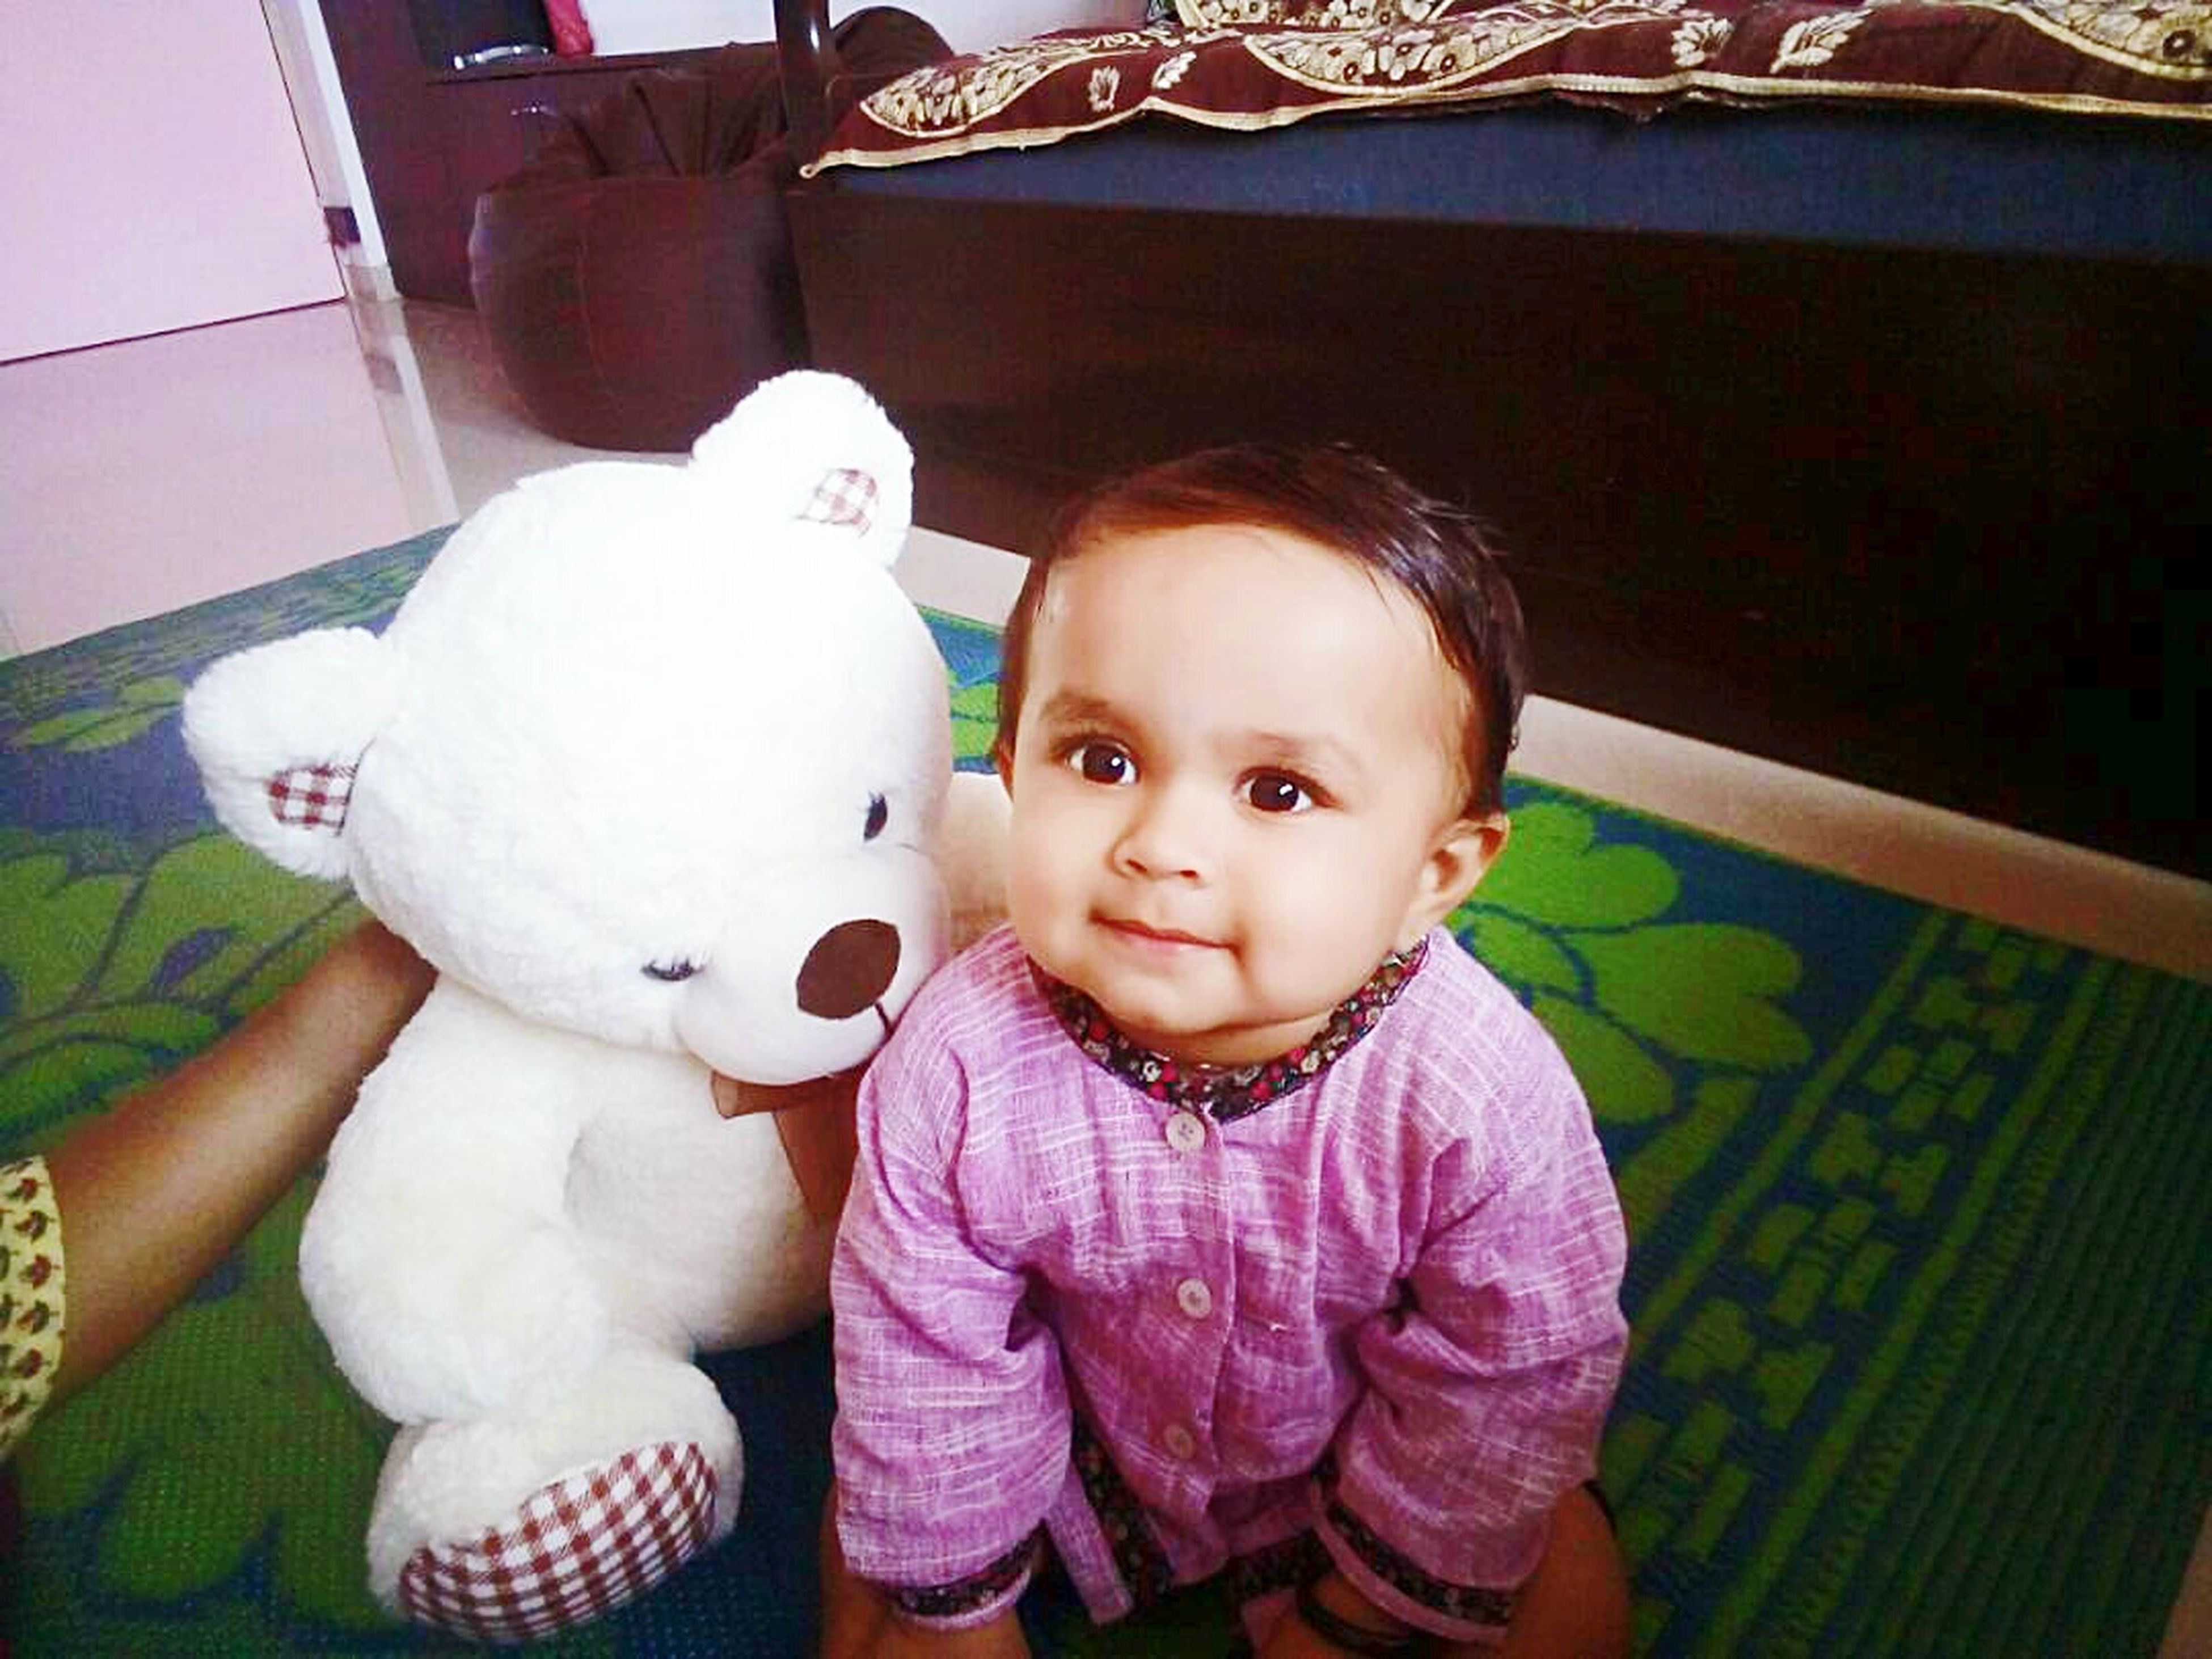 childhood, toy, stuffed toy, cute, innocence, looking at camera, babyhood, smiling, baby, indoors, teddy bear, portrait, one person, real people, happiness, home interior, day, babies only, animal themes, mammal, people